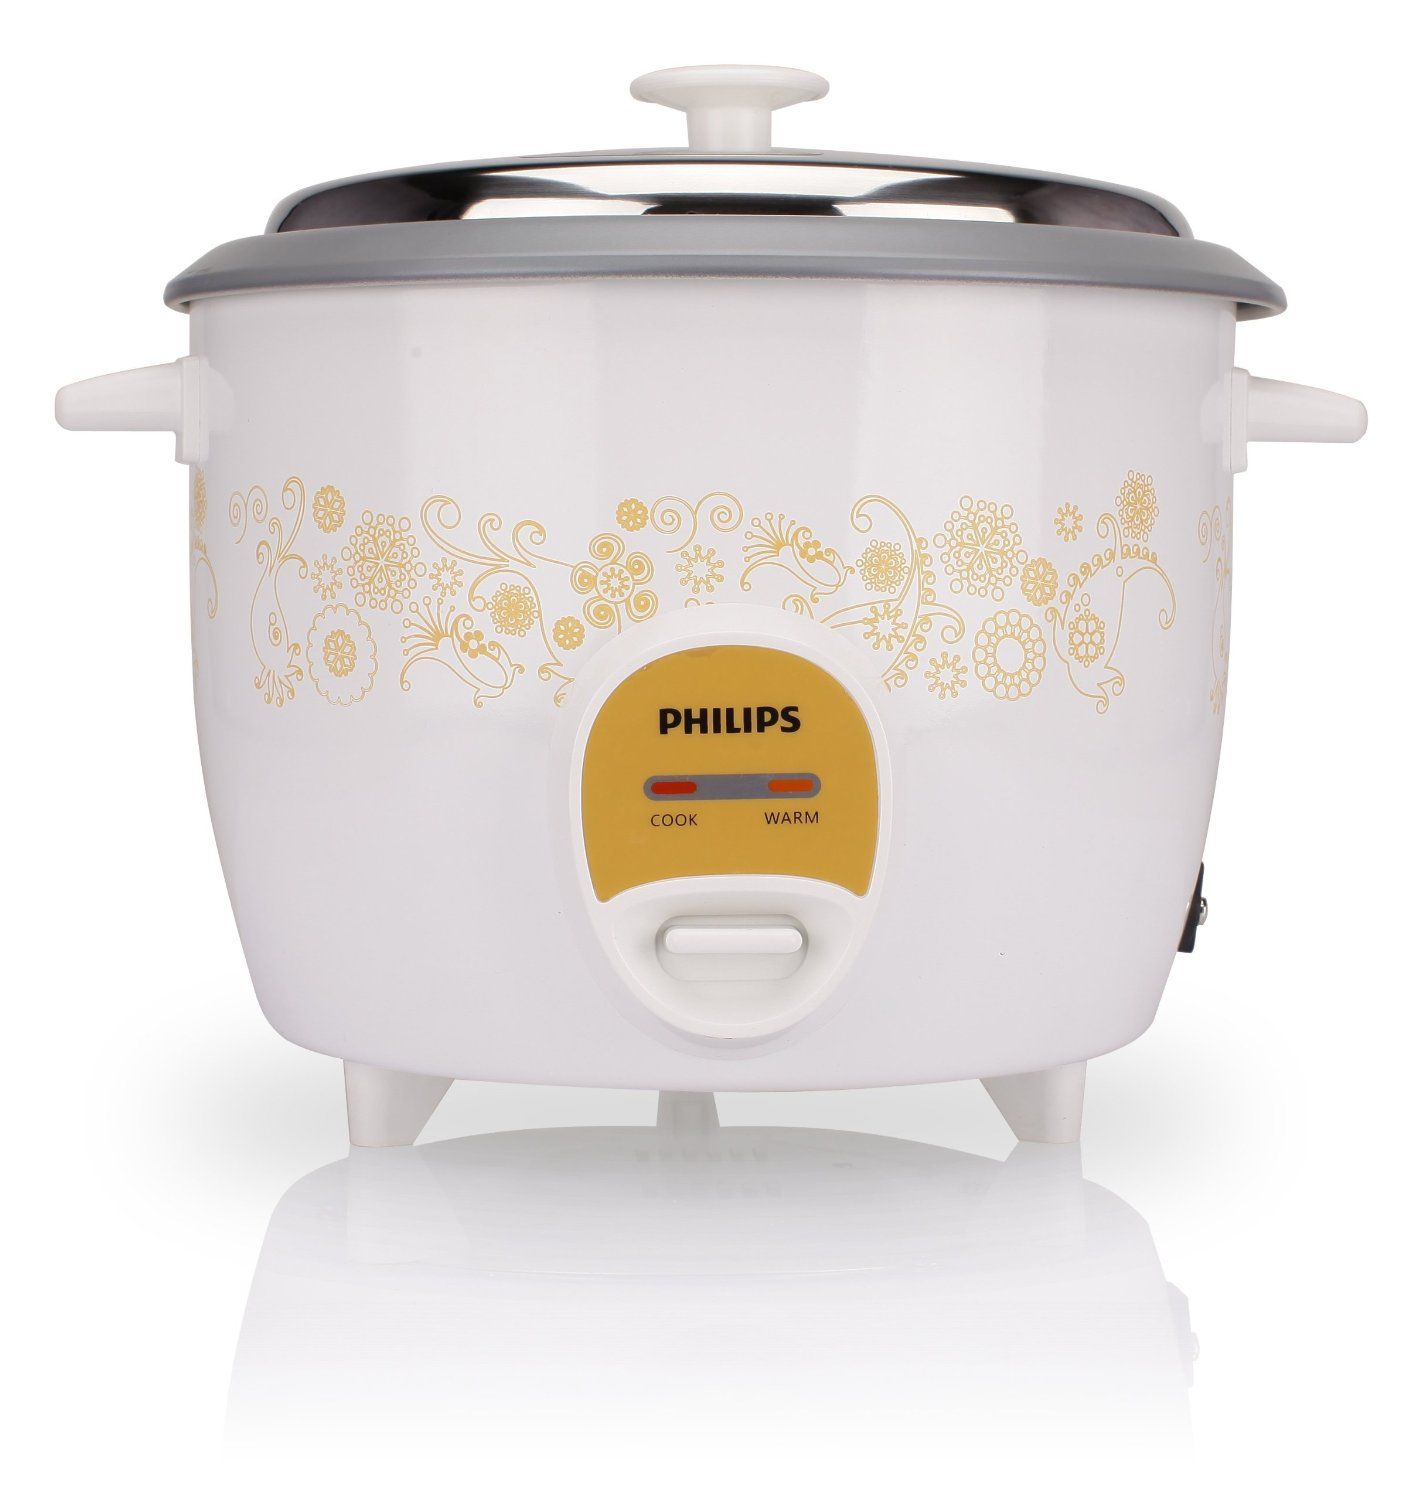 With Automatic Cooking Programs To Preserve The Freshness And Nutrients In Every Bowl Of Rice Cooker Rice Cooker Top Kitchen Appliance Brands